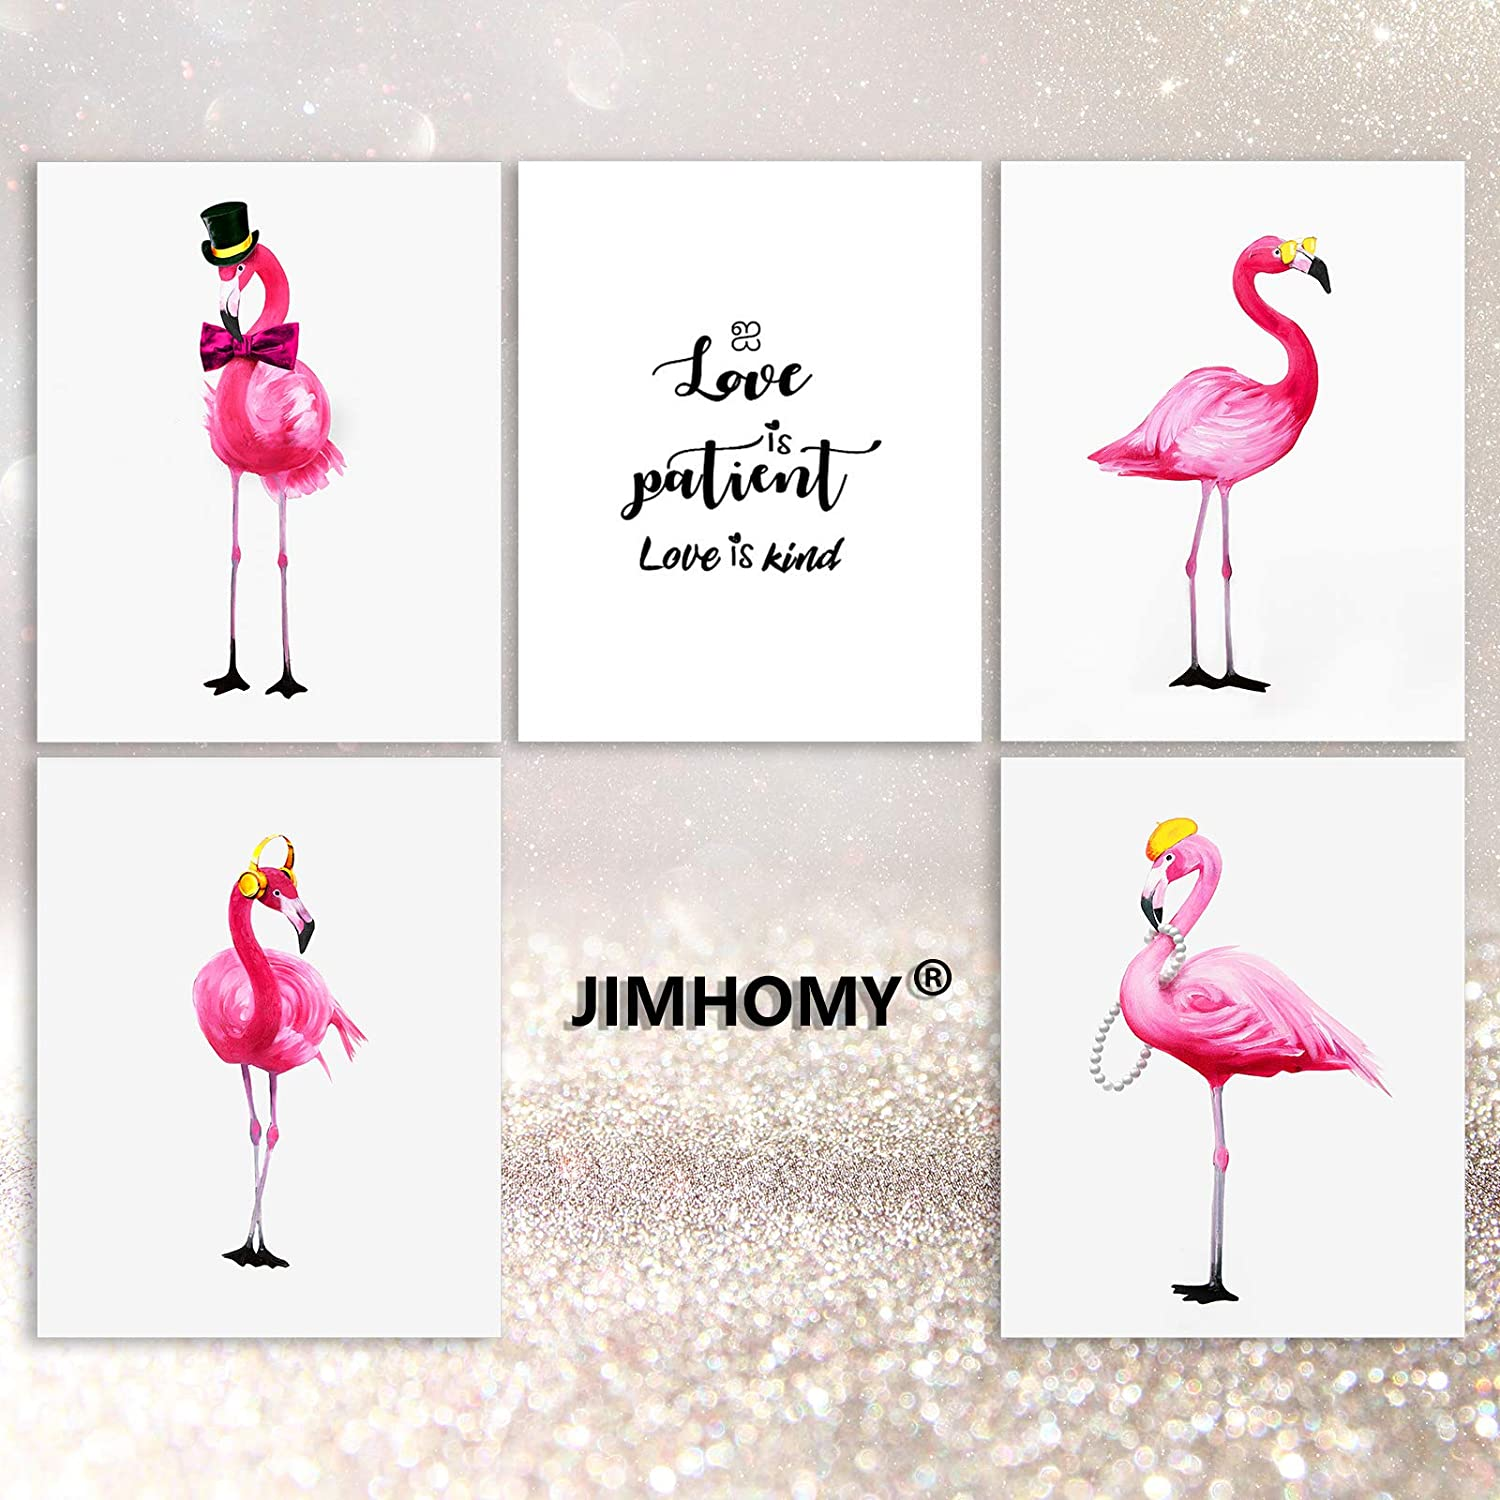 JIMHOMY Animal Canvas Prints Pink Wall Art for Women Flamingo Wall Prints Posters - Love is Patient Love is Kind Quote Wall Decor for Living Room Kitchen Set of 5 UNFRAMED 8x10in